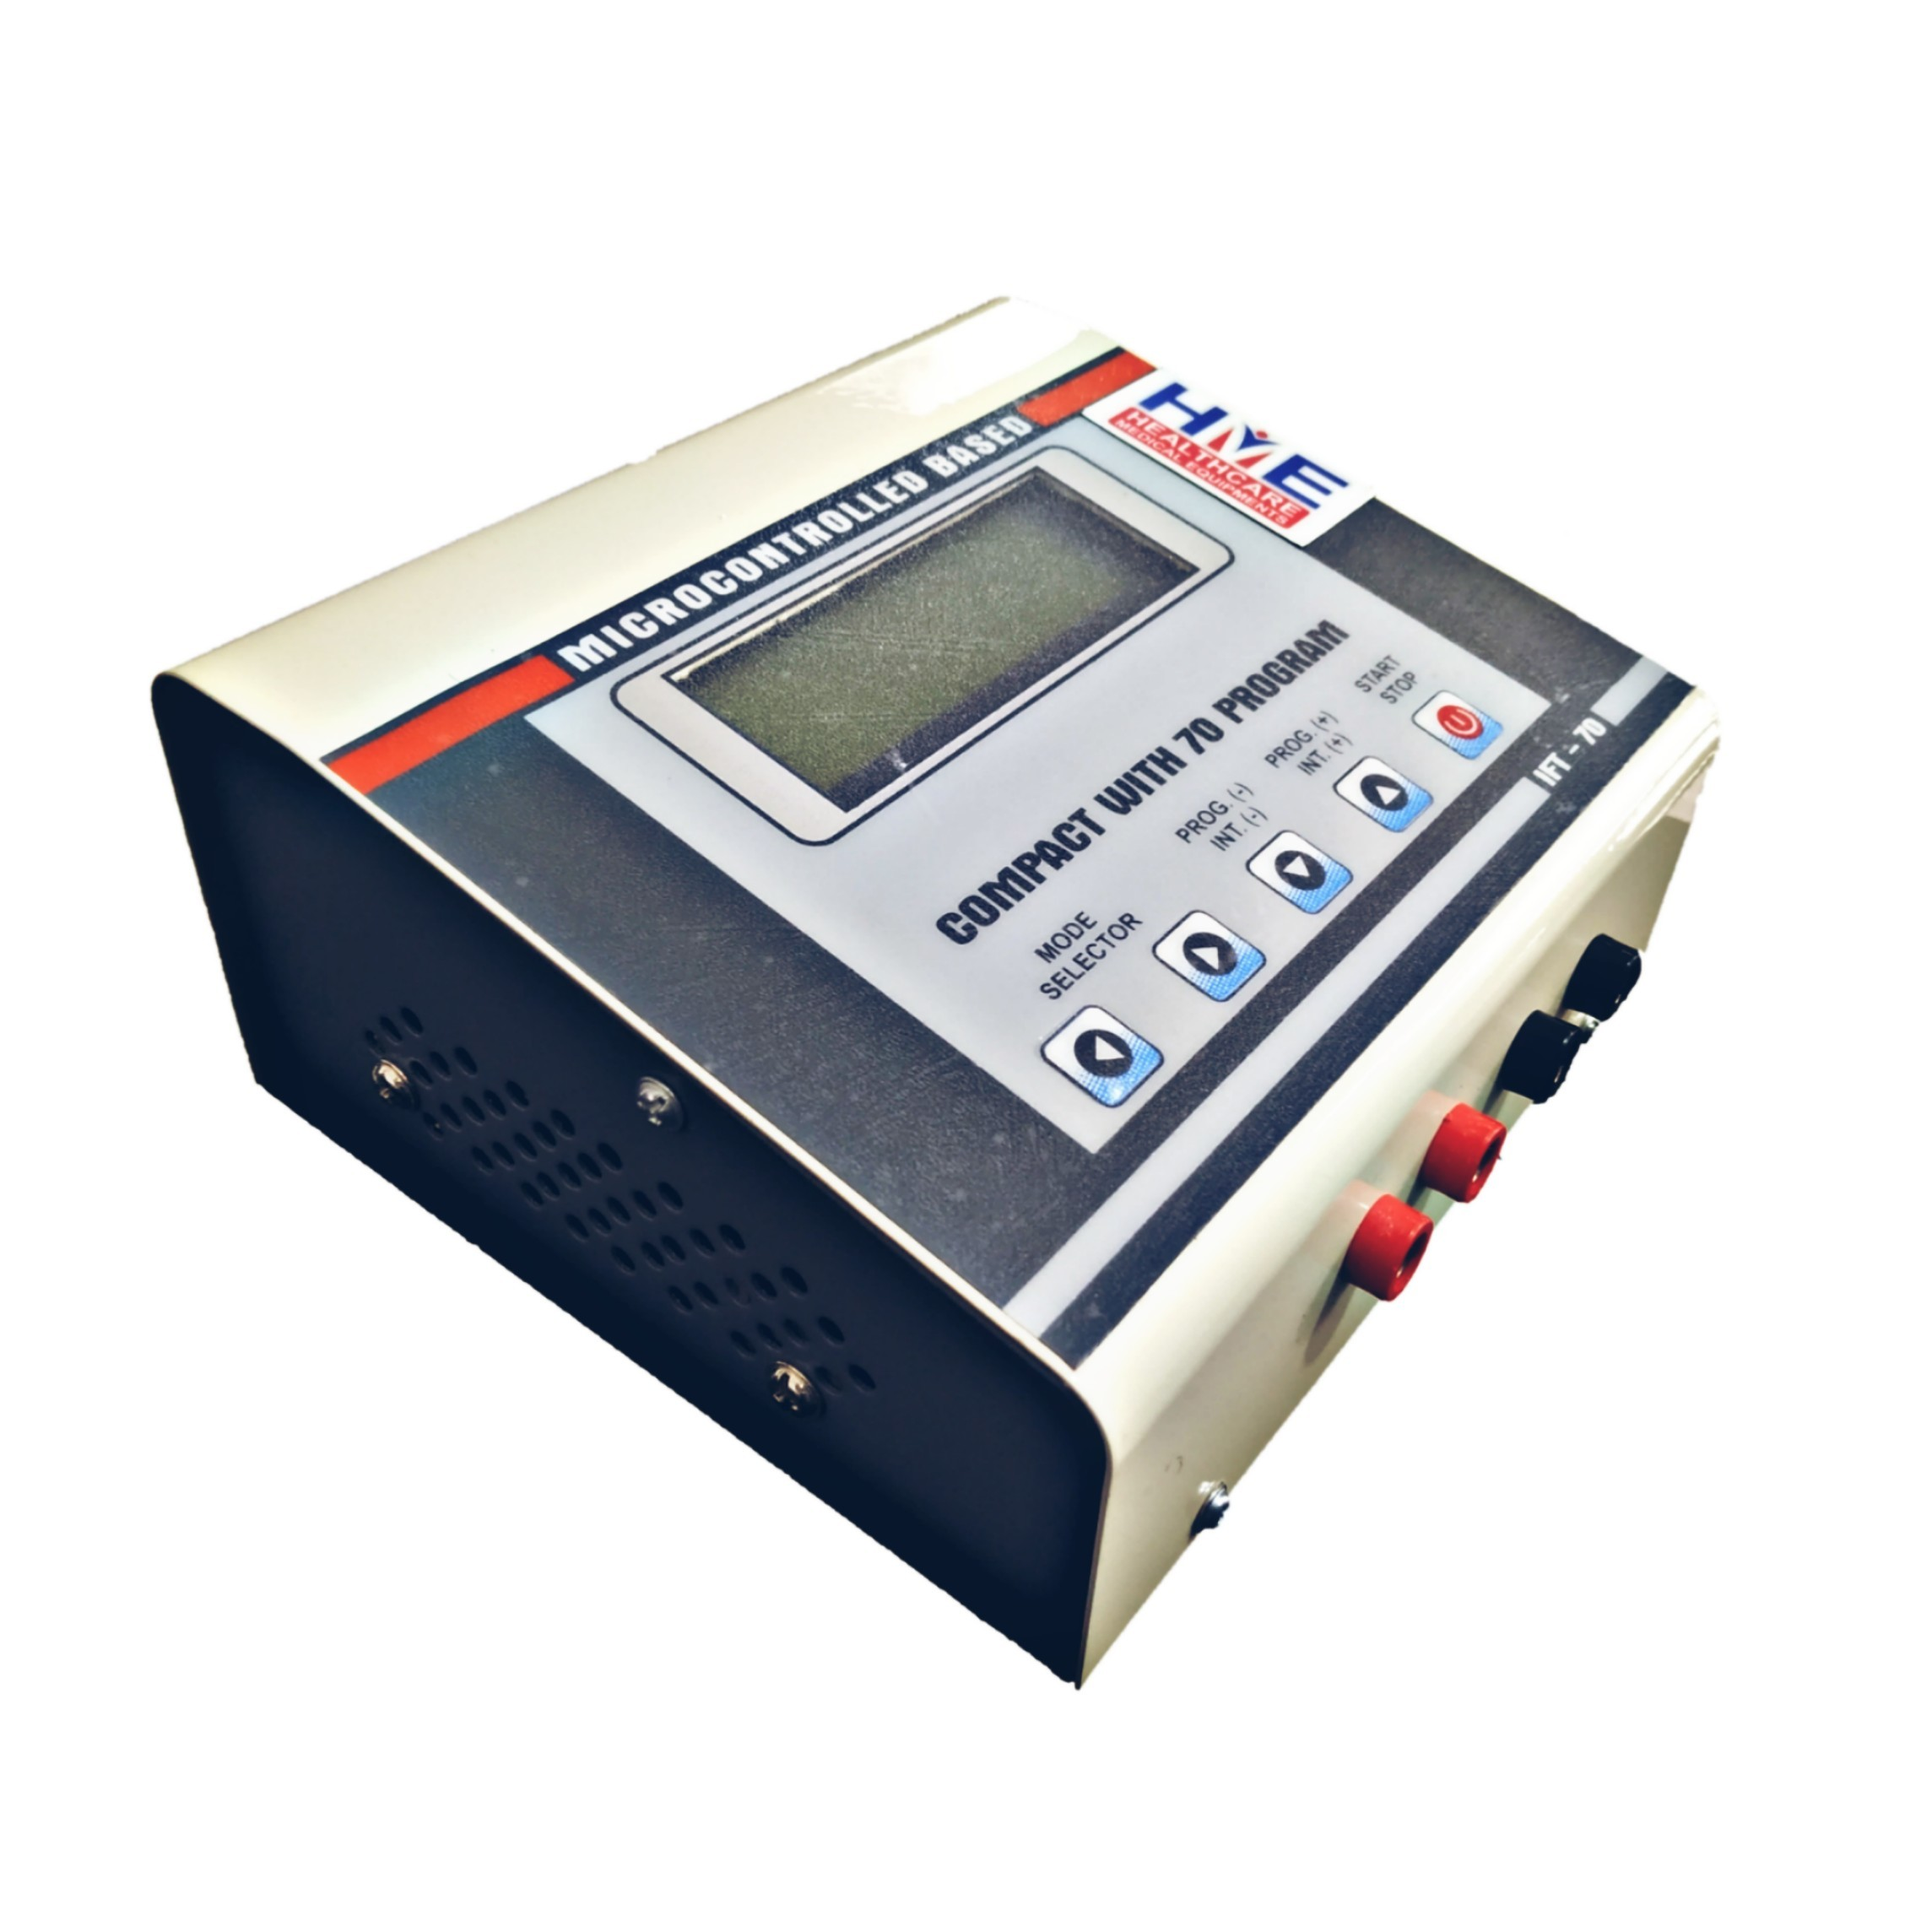 Compact IFT With 70 Program